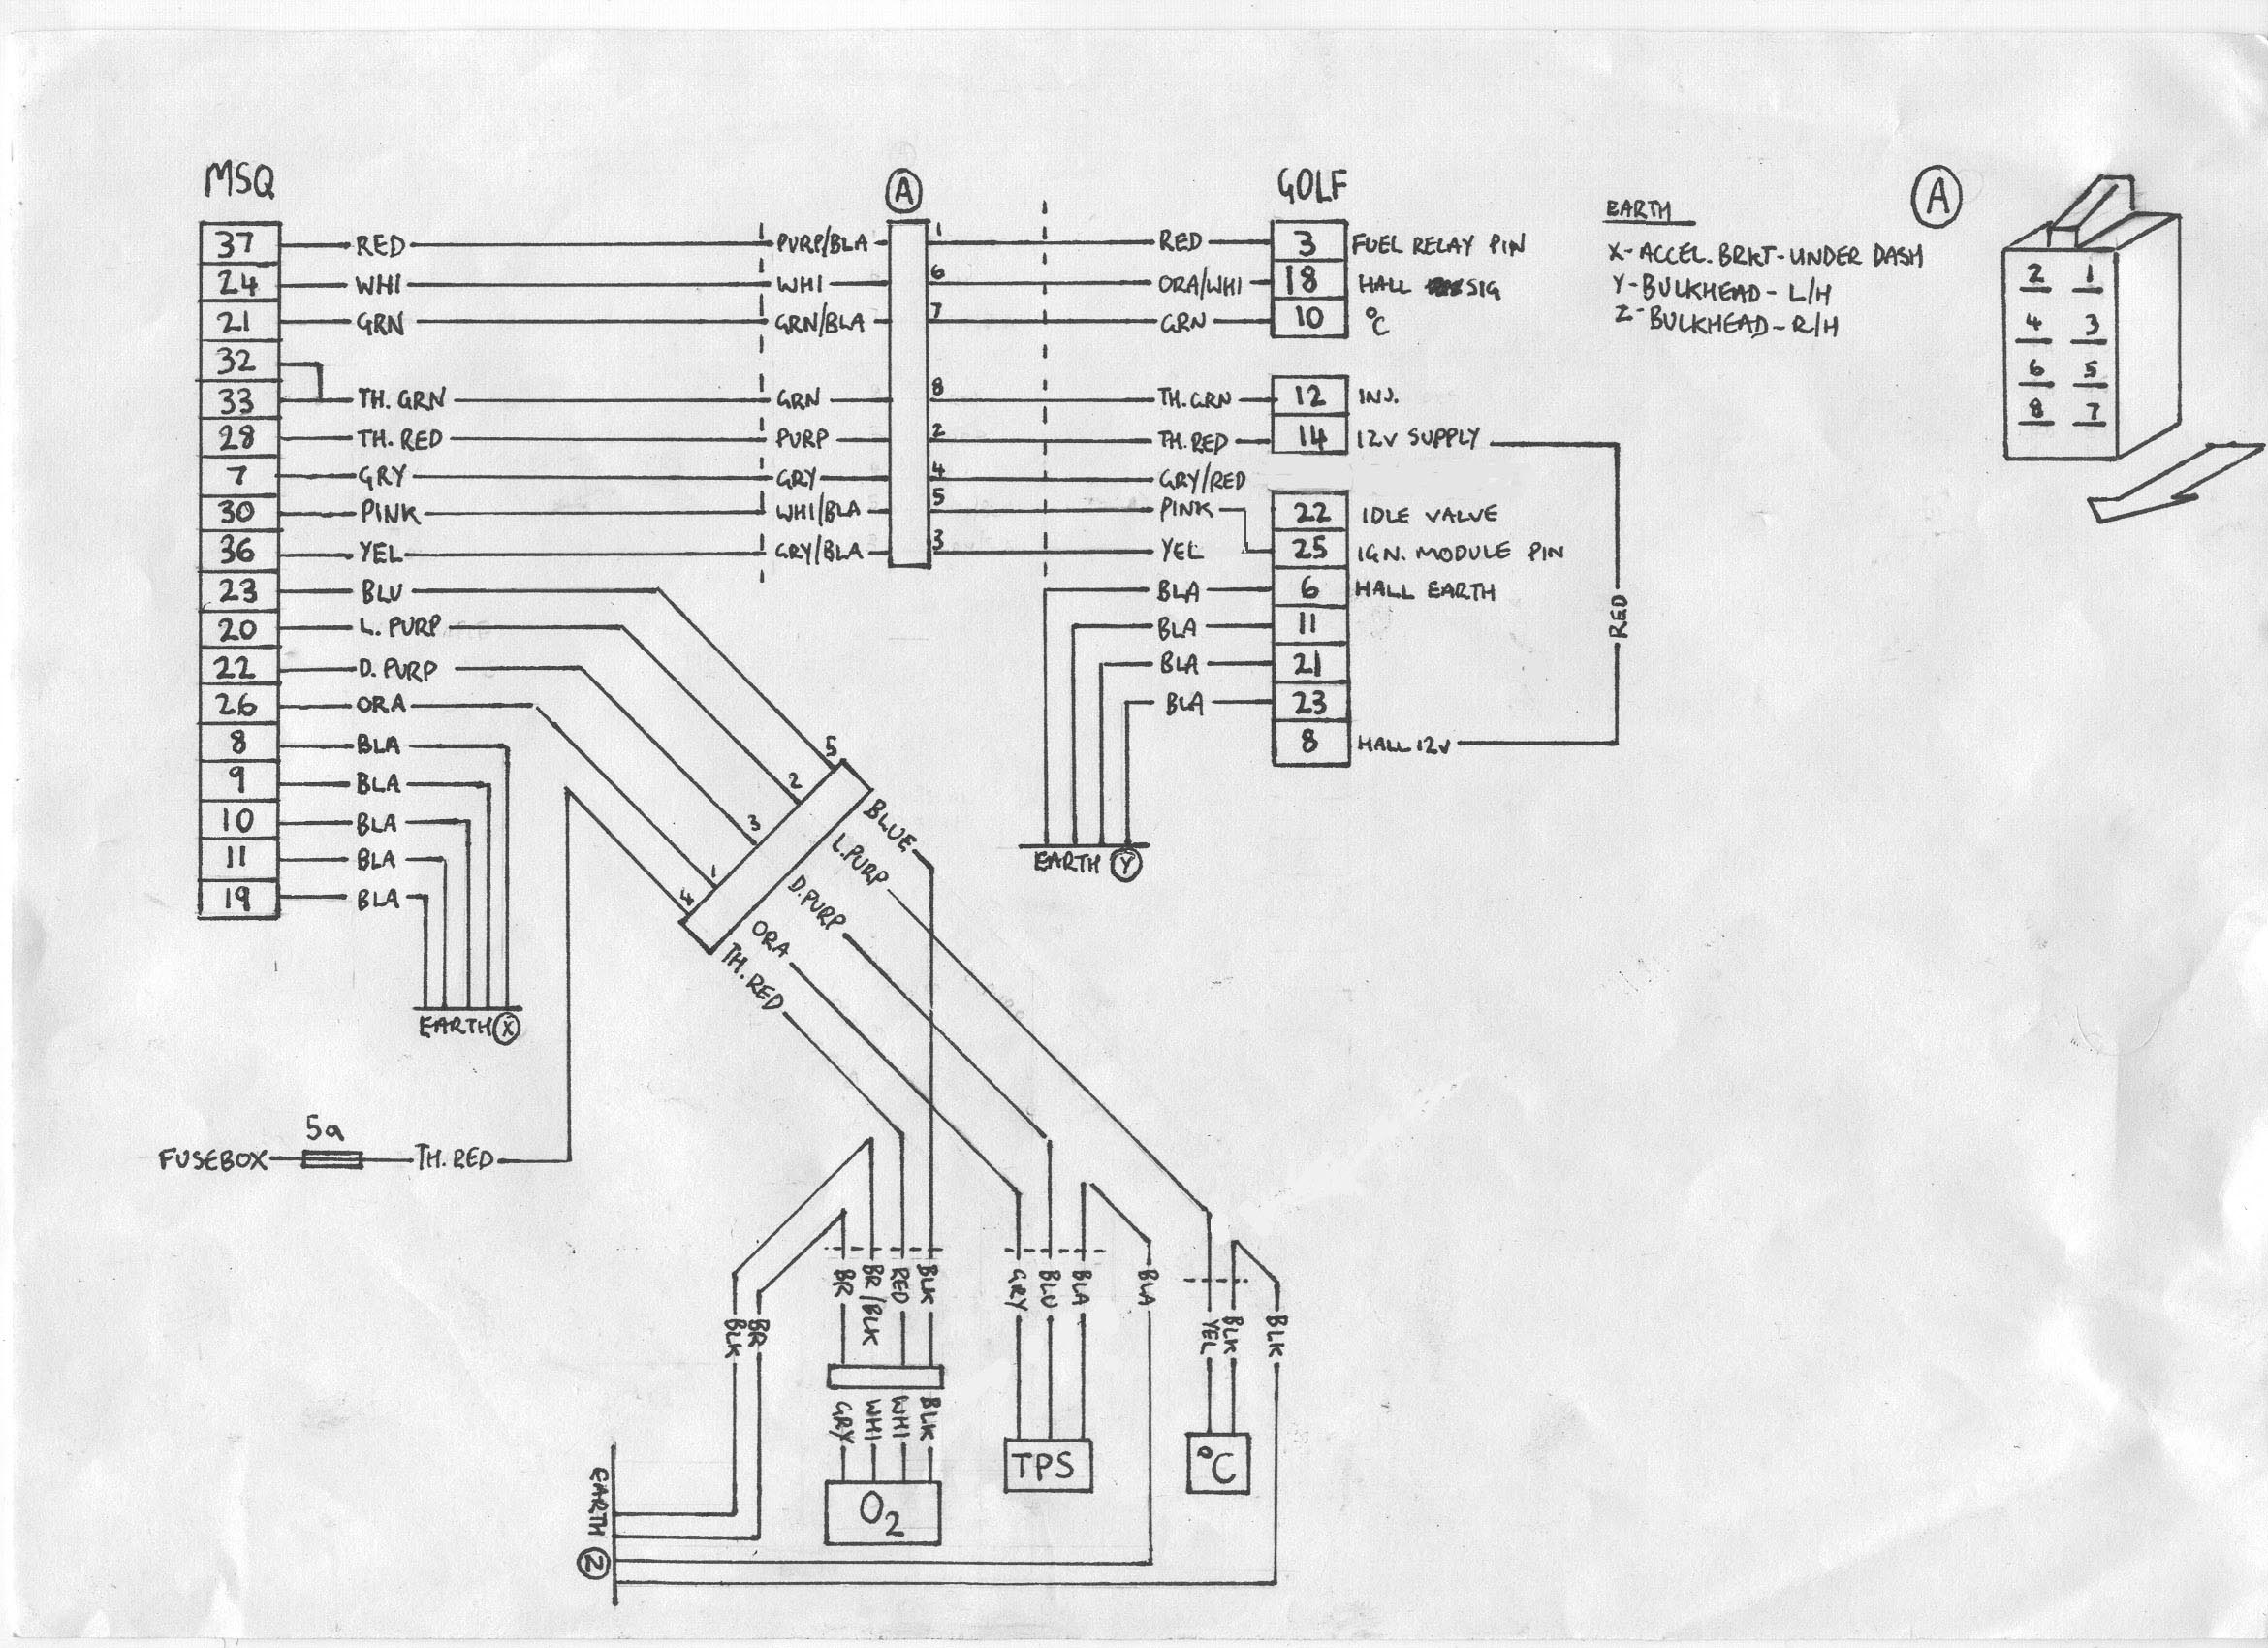 mk2 gti vw golf fuse box  diagrams  auto fuse box diagram